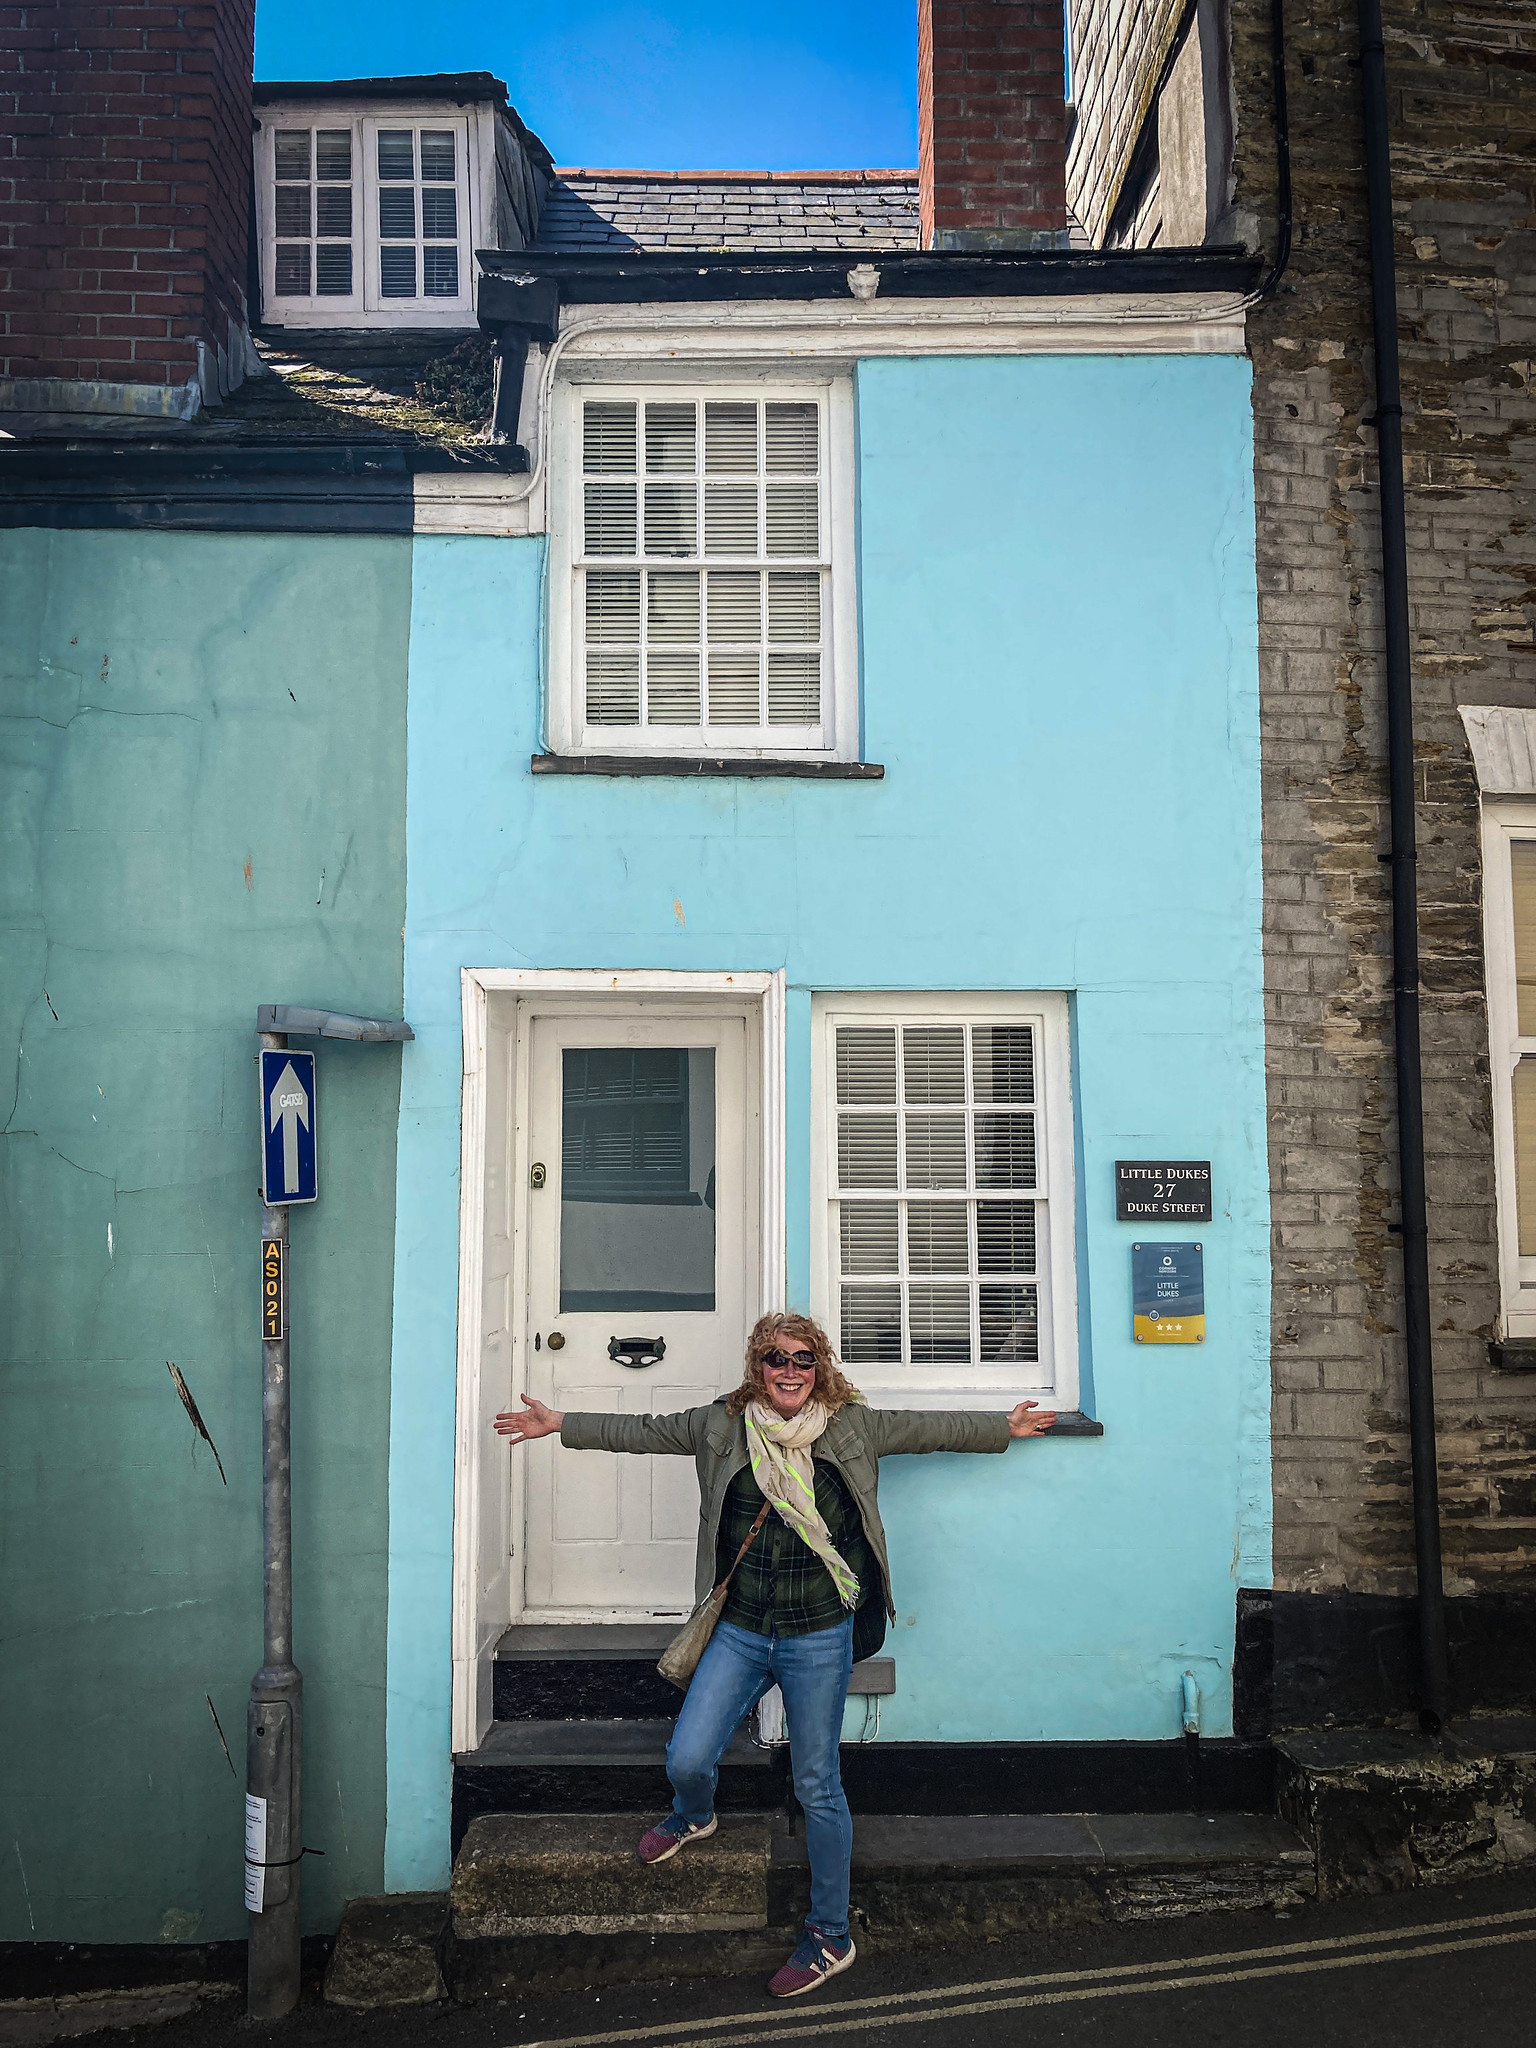 Smallest house in Padstow?